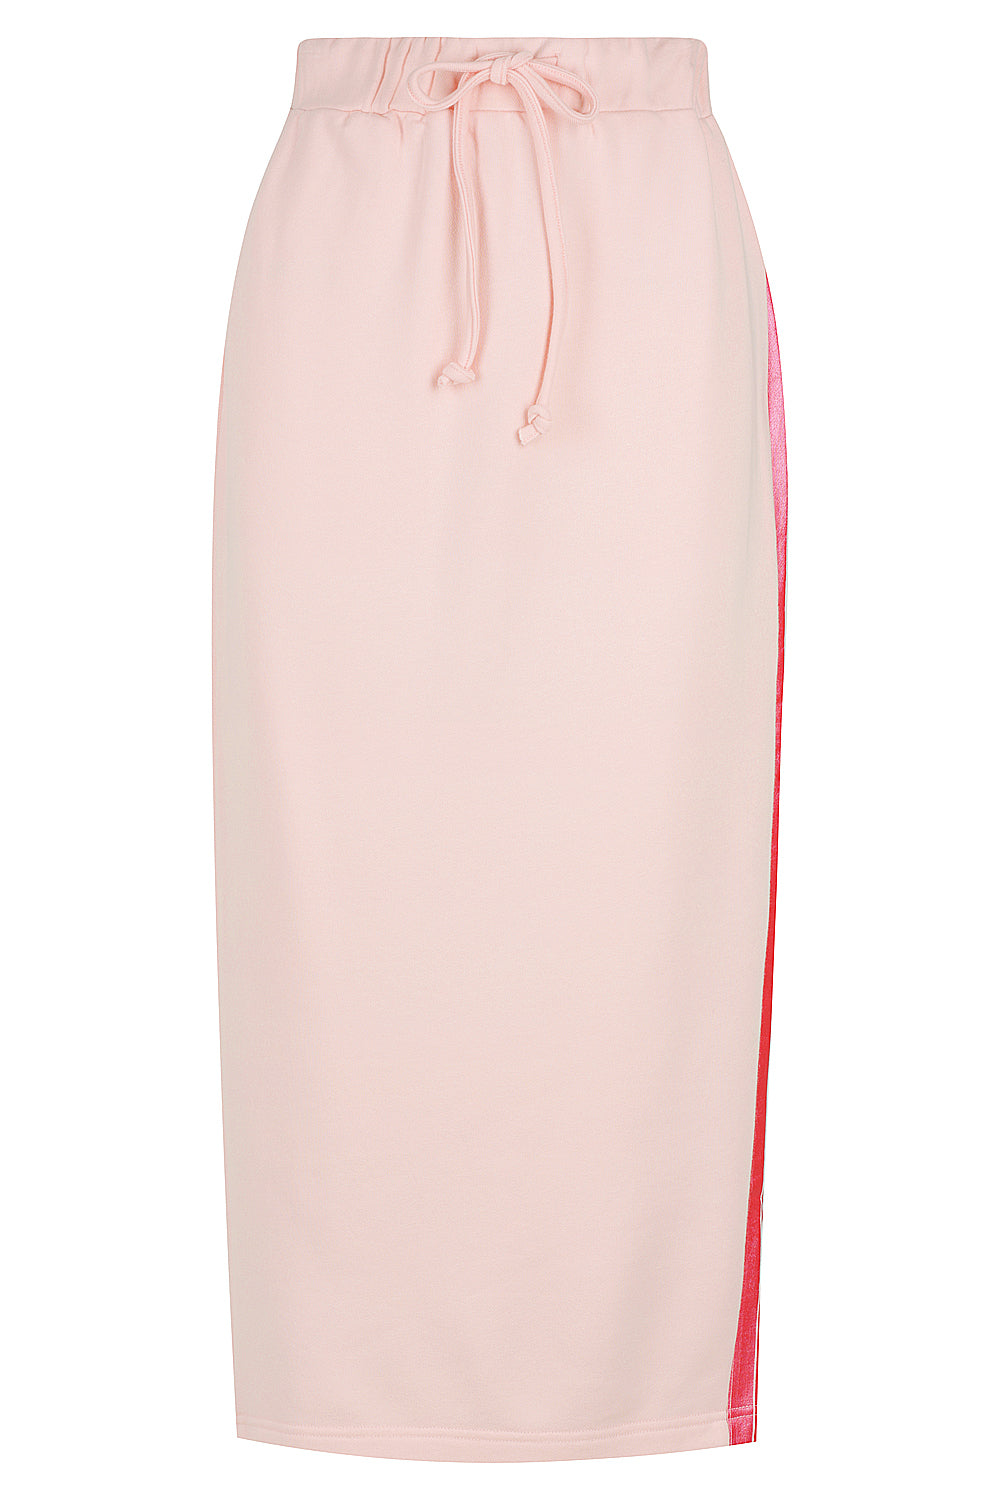 Foil Pencil Skirt - pale pink